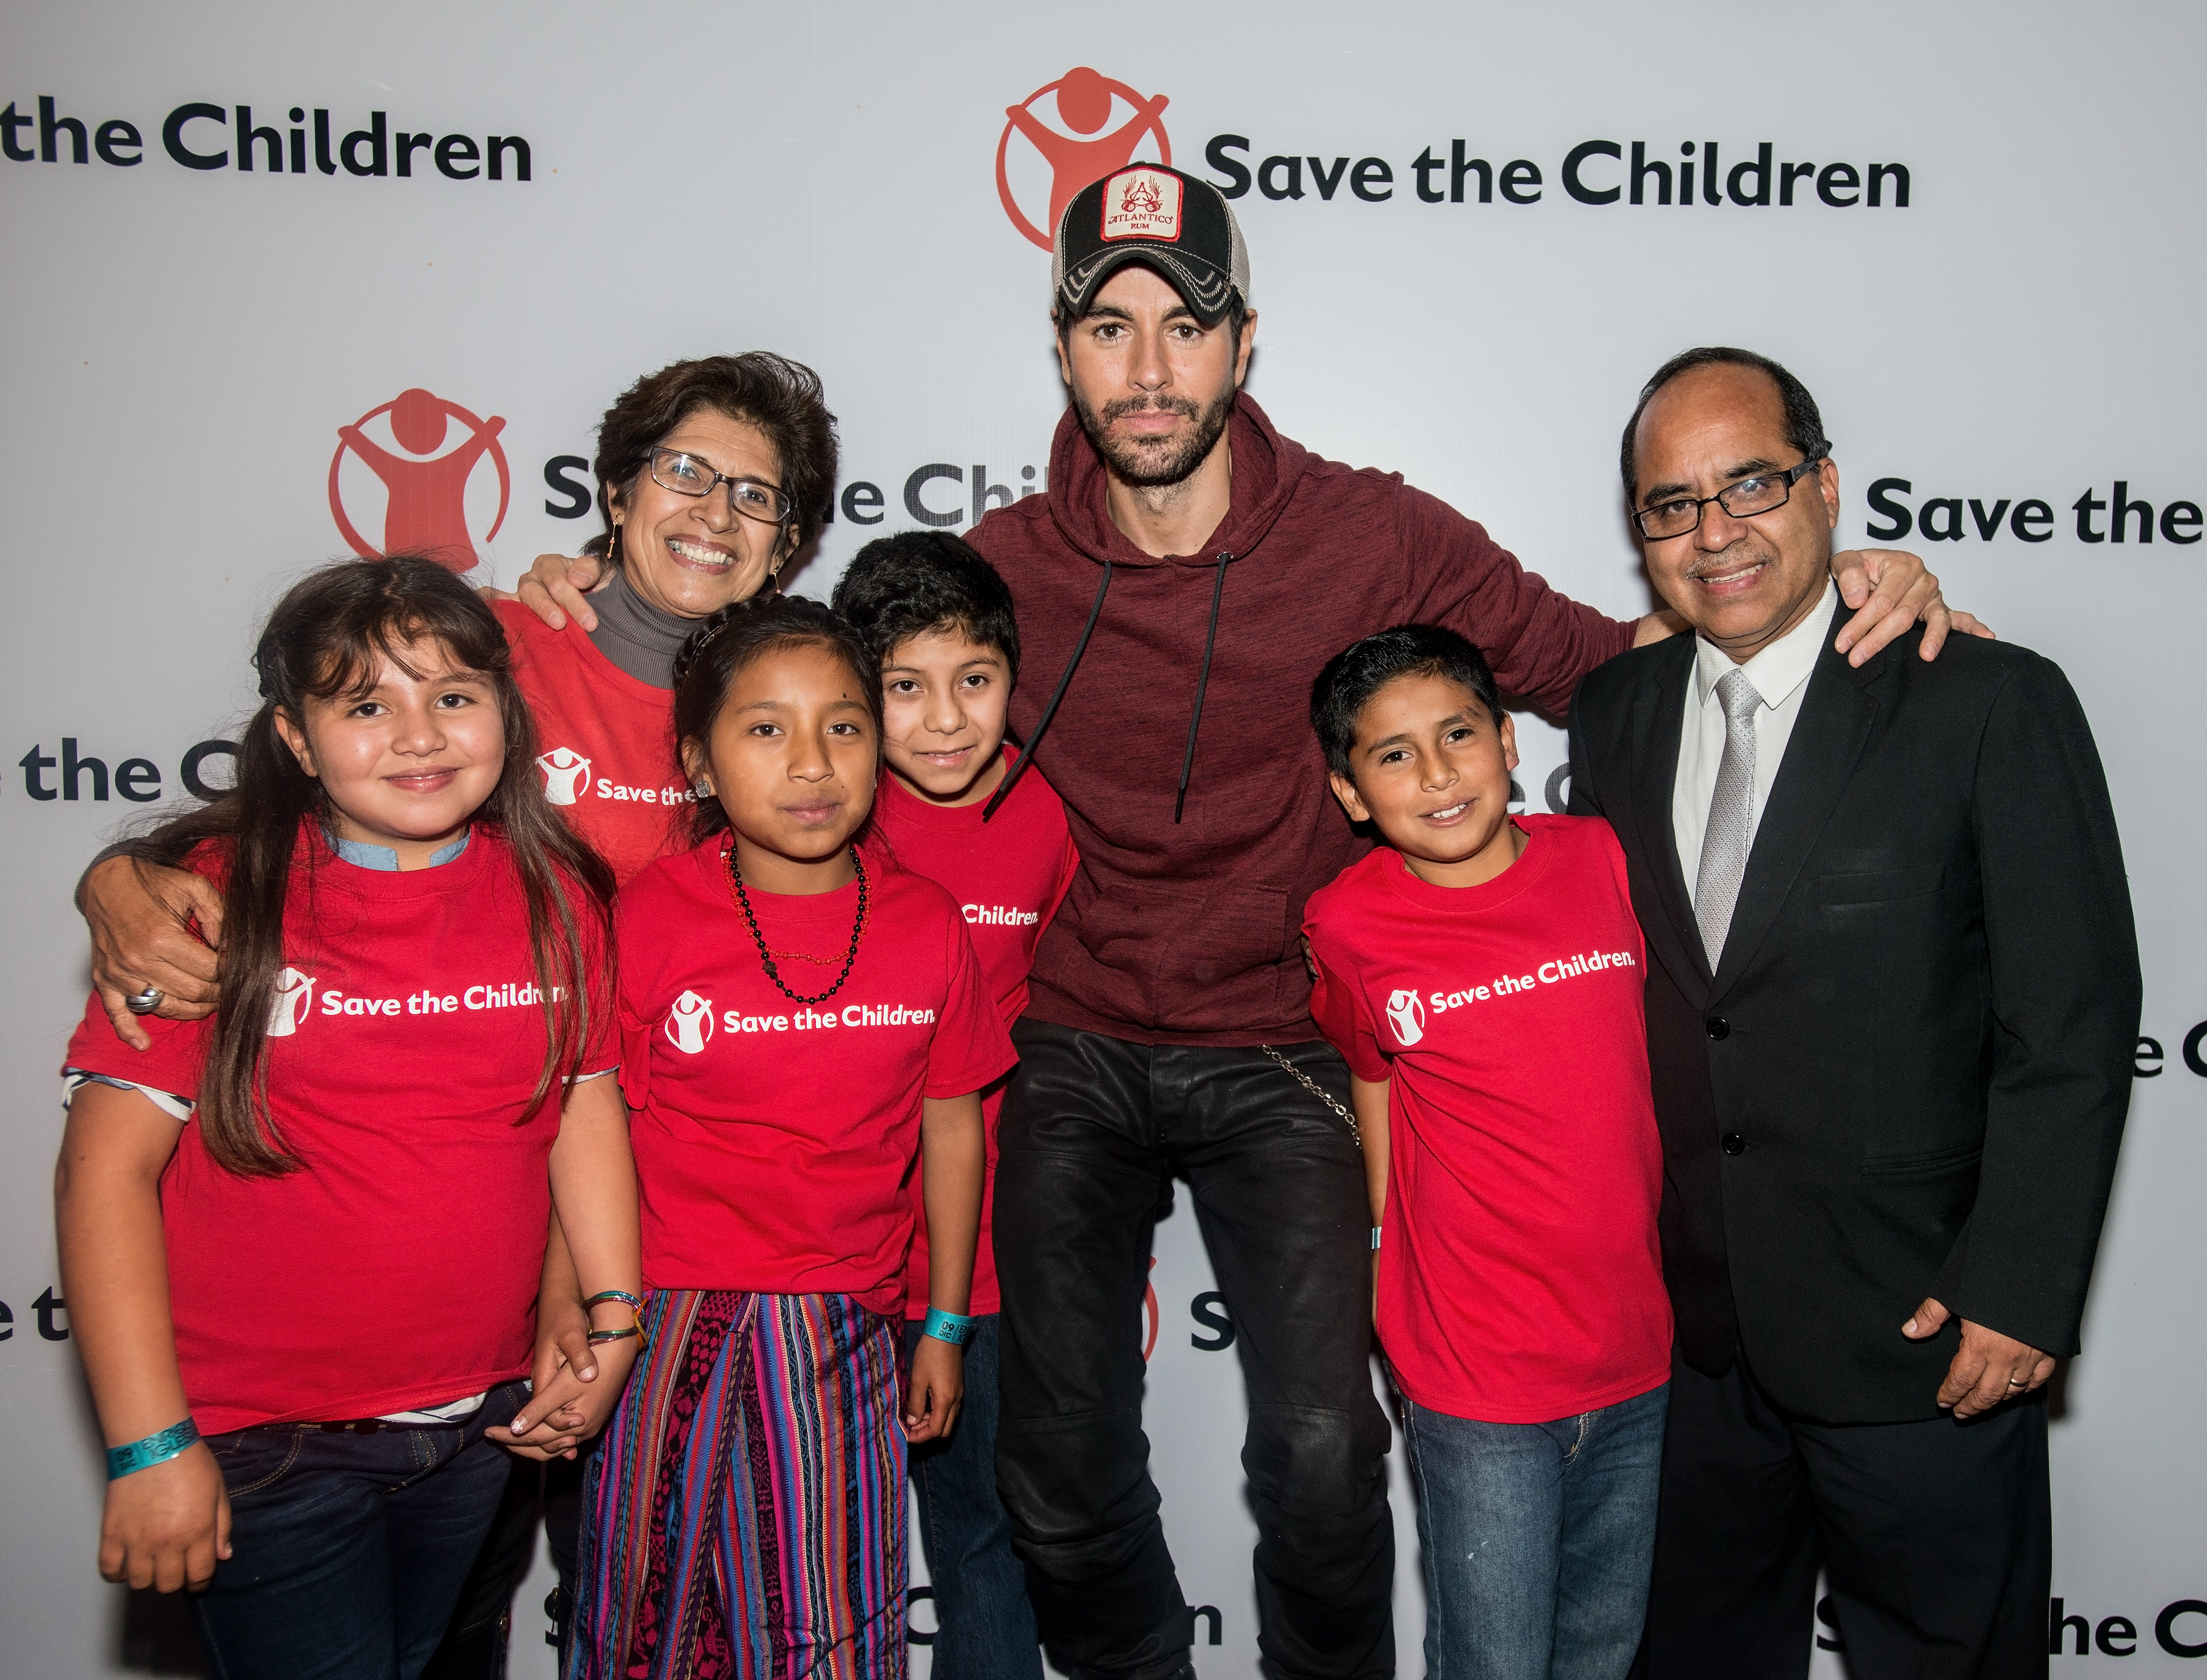 Save the Children meet and greet with Enrique Iglesias